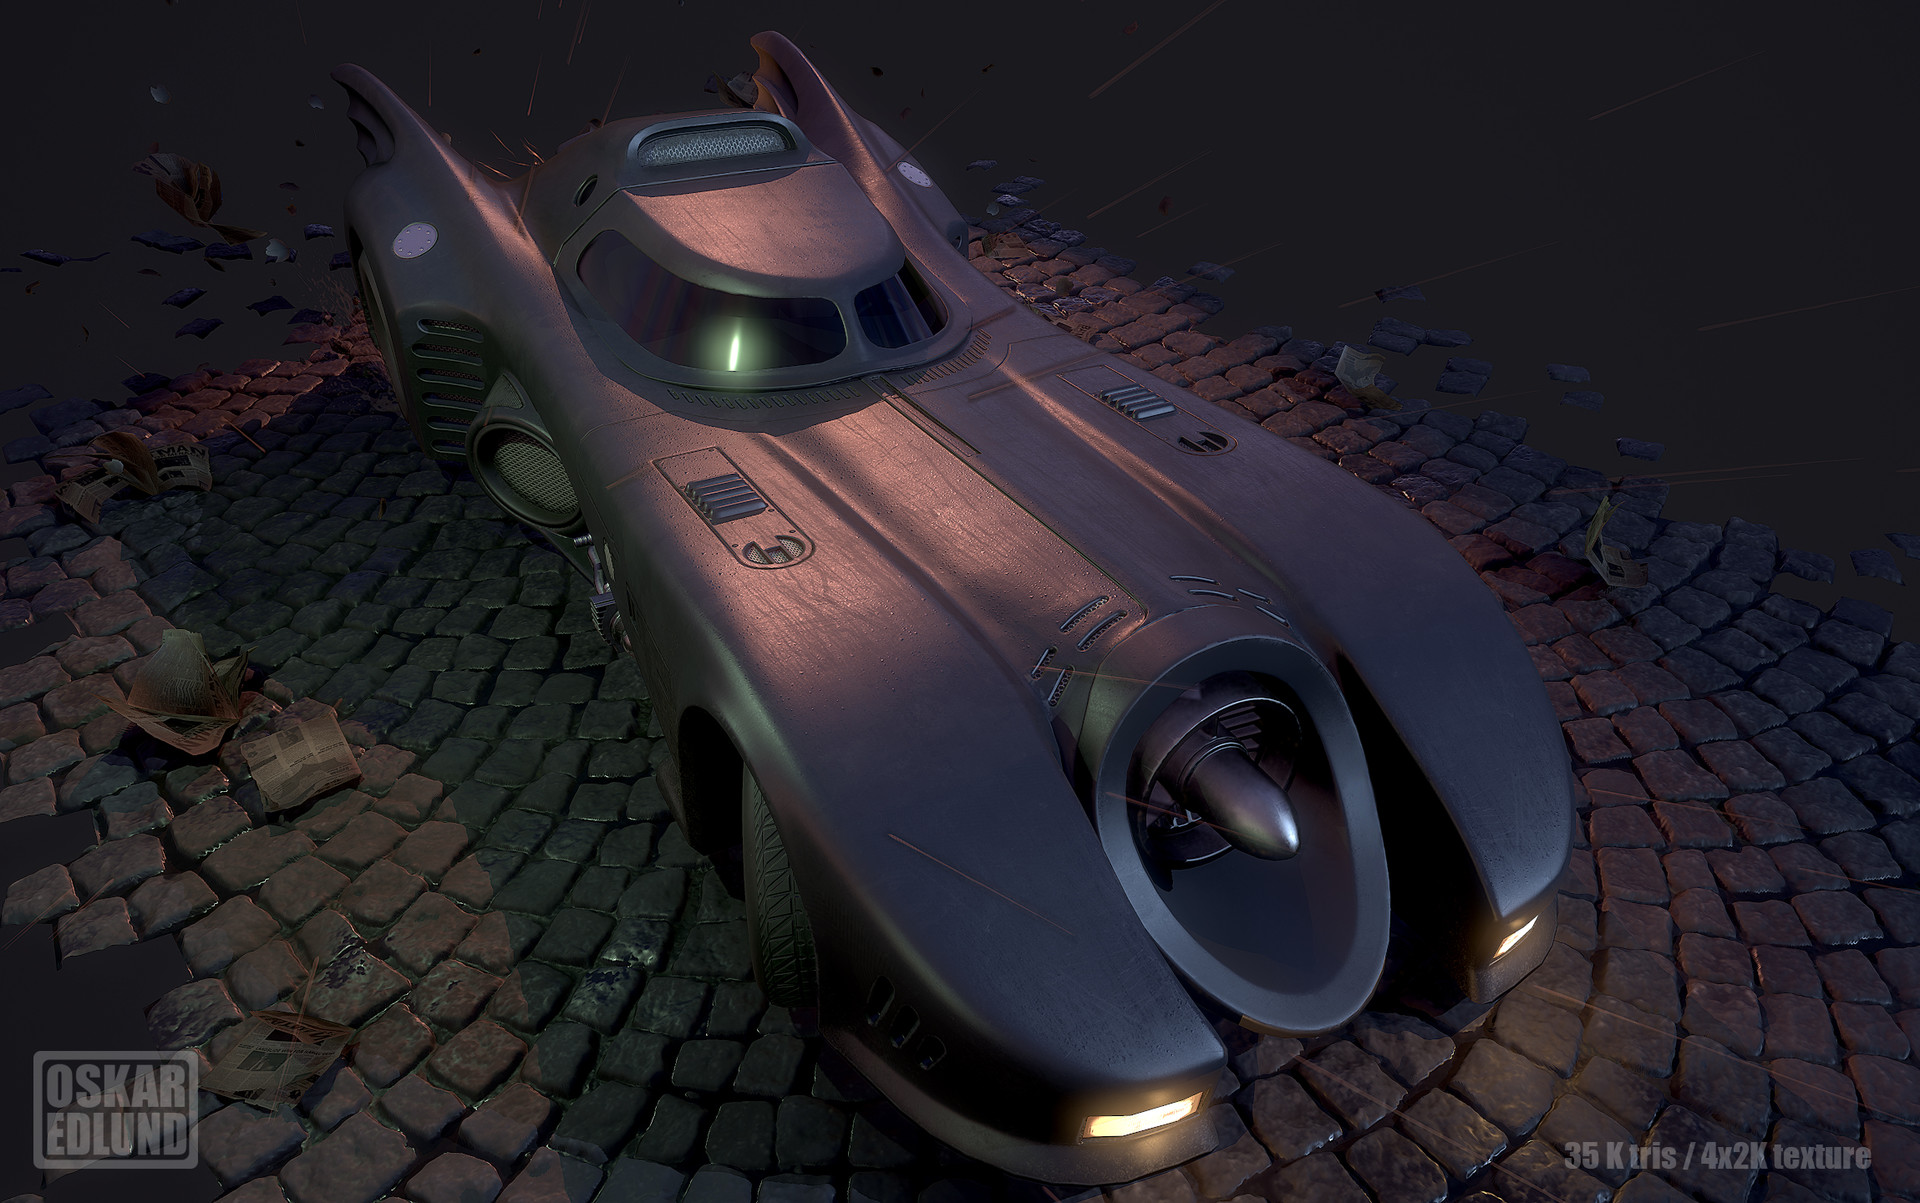 Oskar edlund batmobile 05